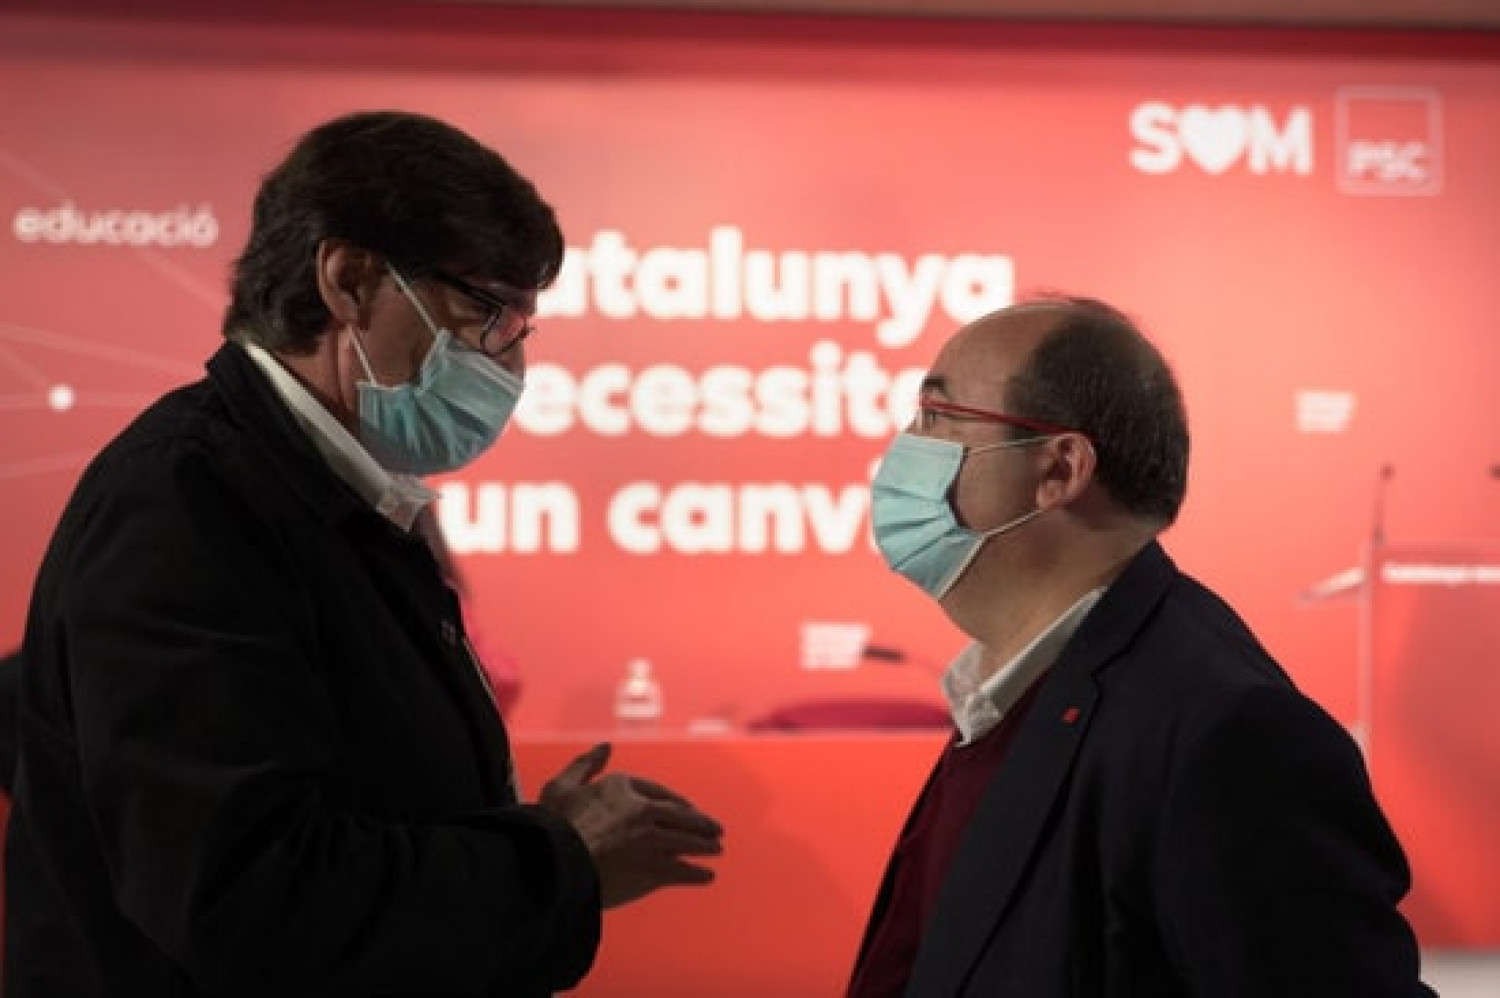 Salvador Illa, left, and Miquel Iceta, right (Courtesy of the Catalan Socialists)